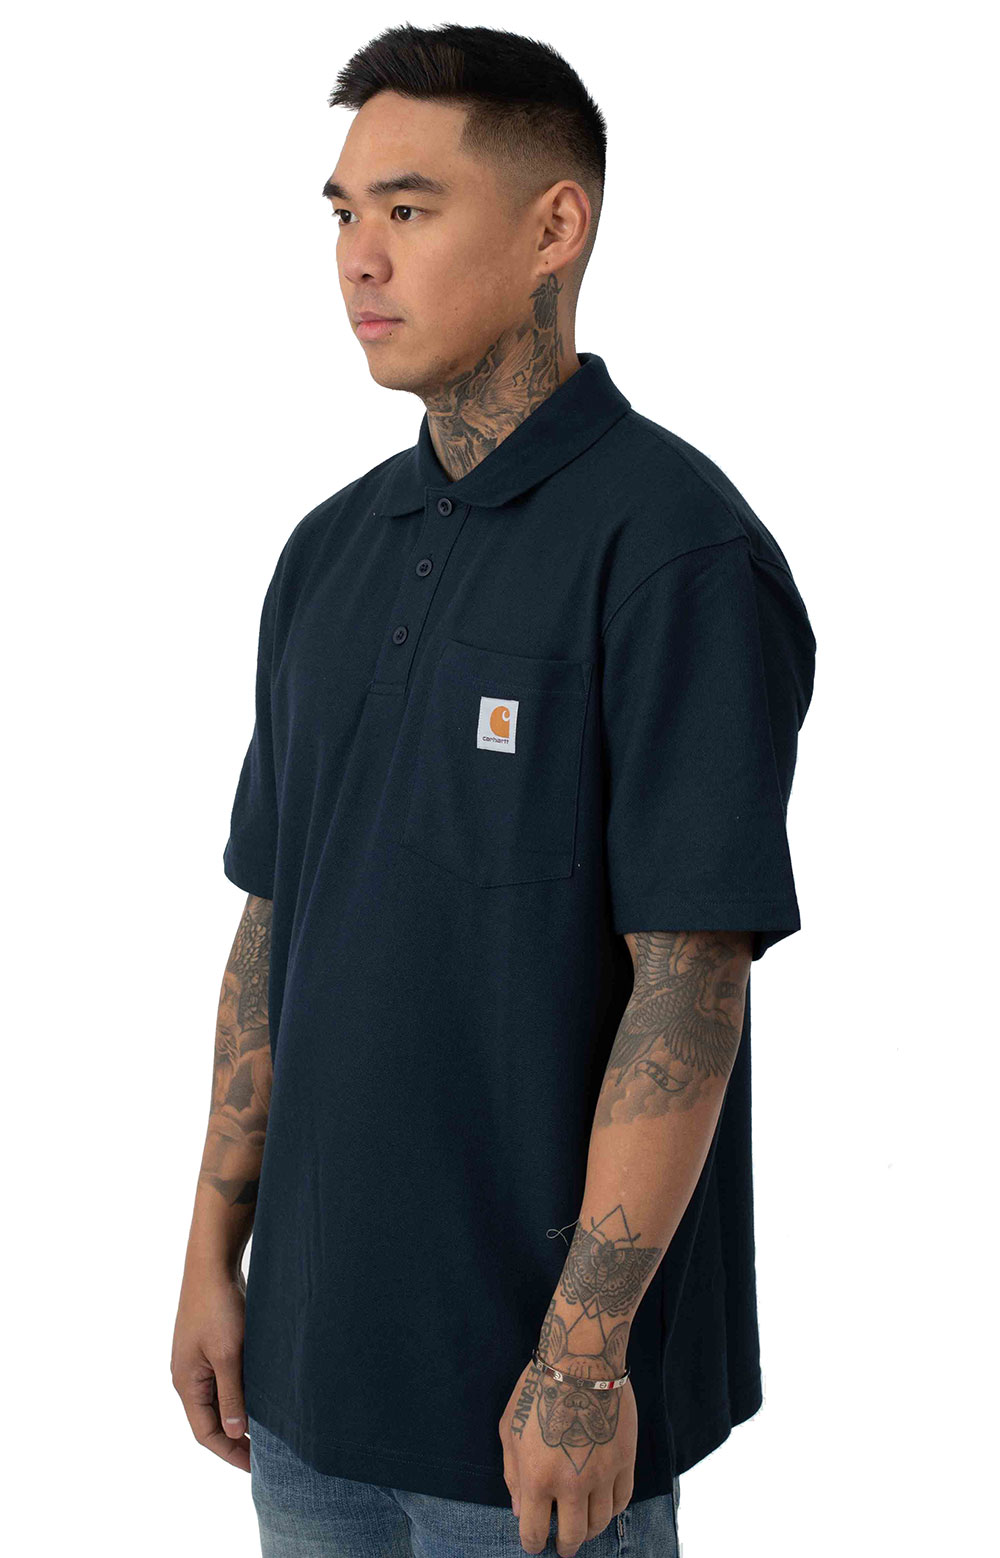 (K570) Contractor's Work Pocket Polo - Navy 2